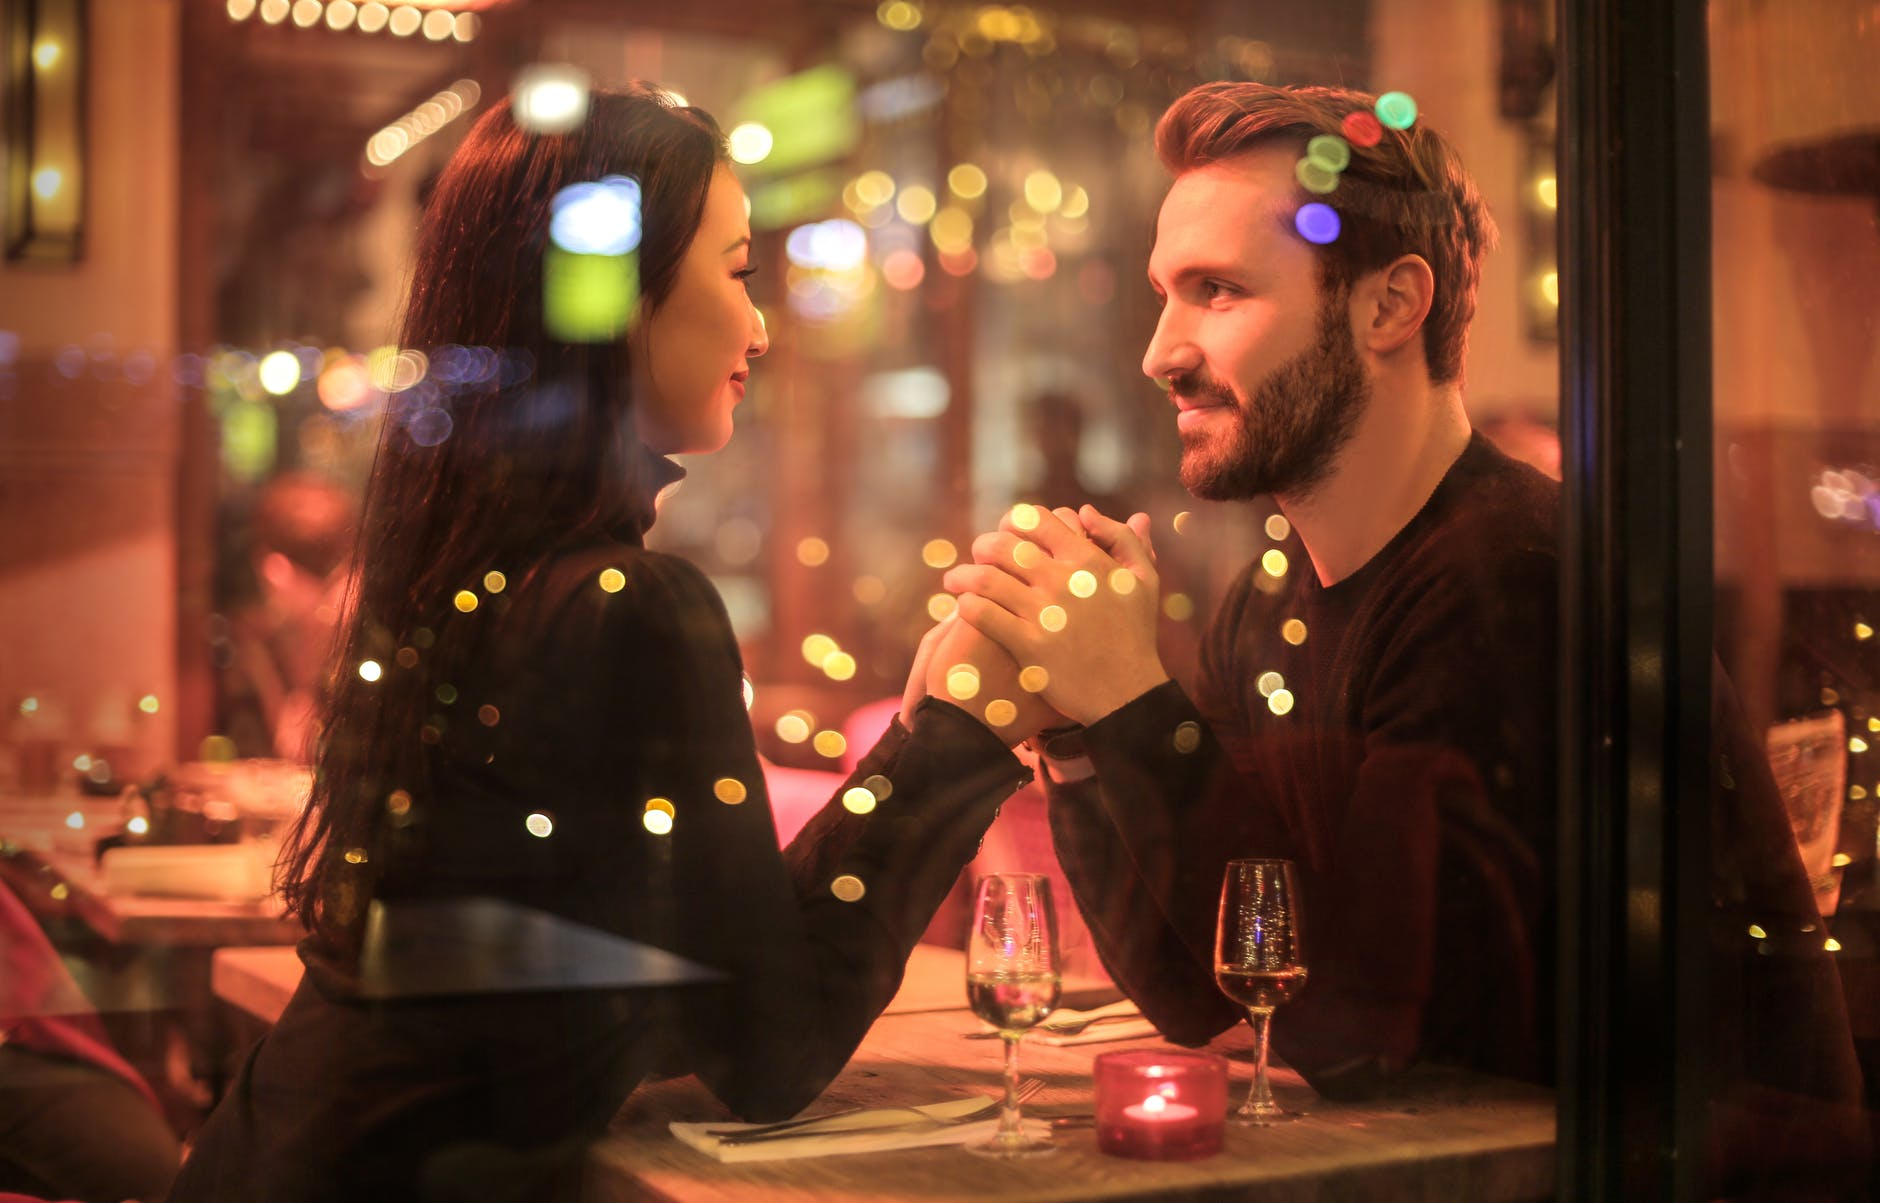 man and woman on a date at dinner with coloured lights around